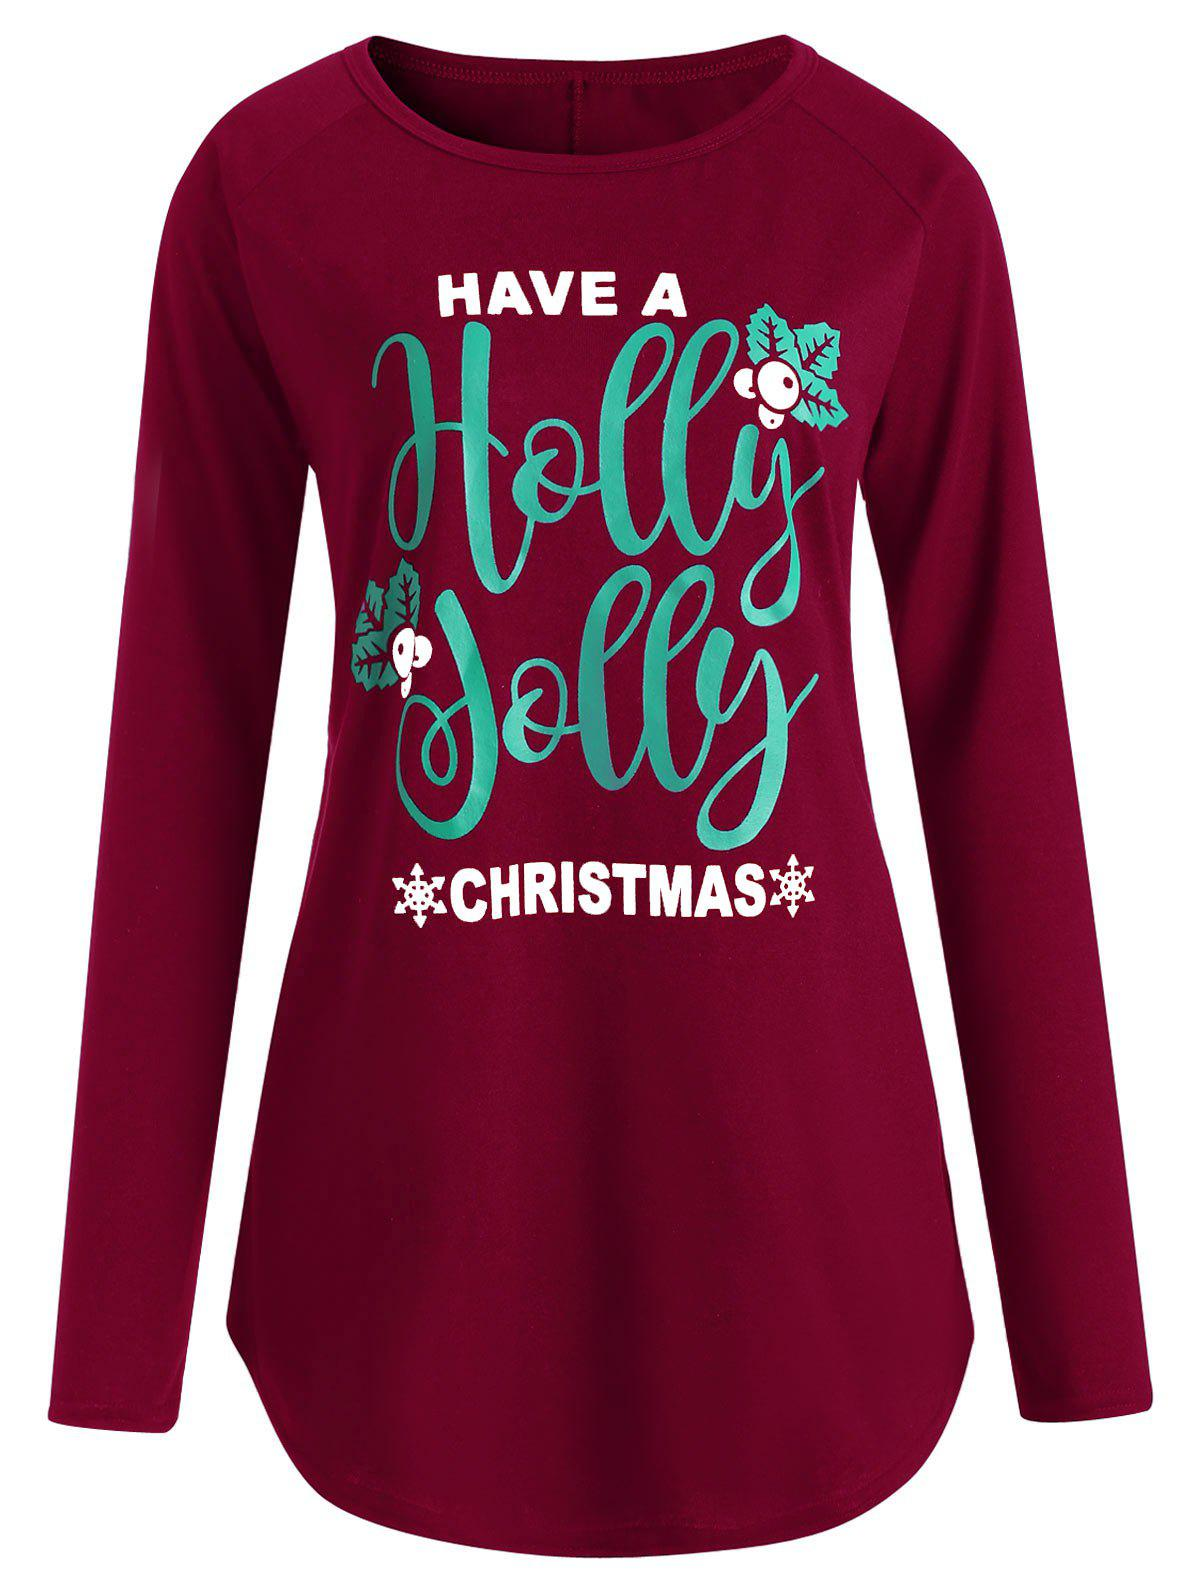 4118a460f 29% OFF] Graphic Plus Size Christmas Long Sleeve Tee | Rosegal